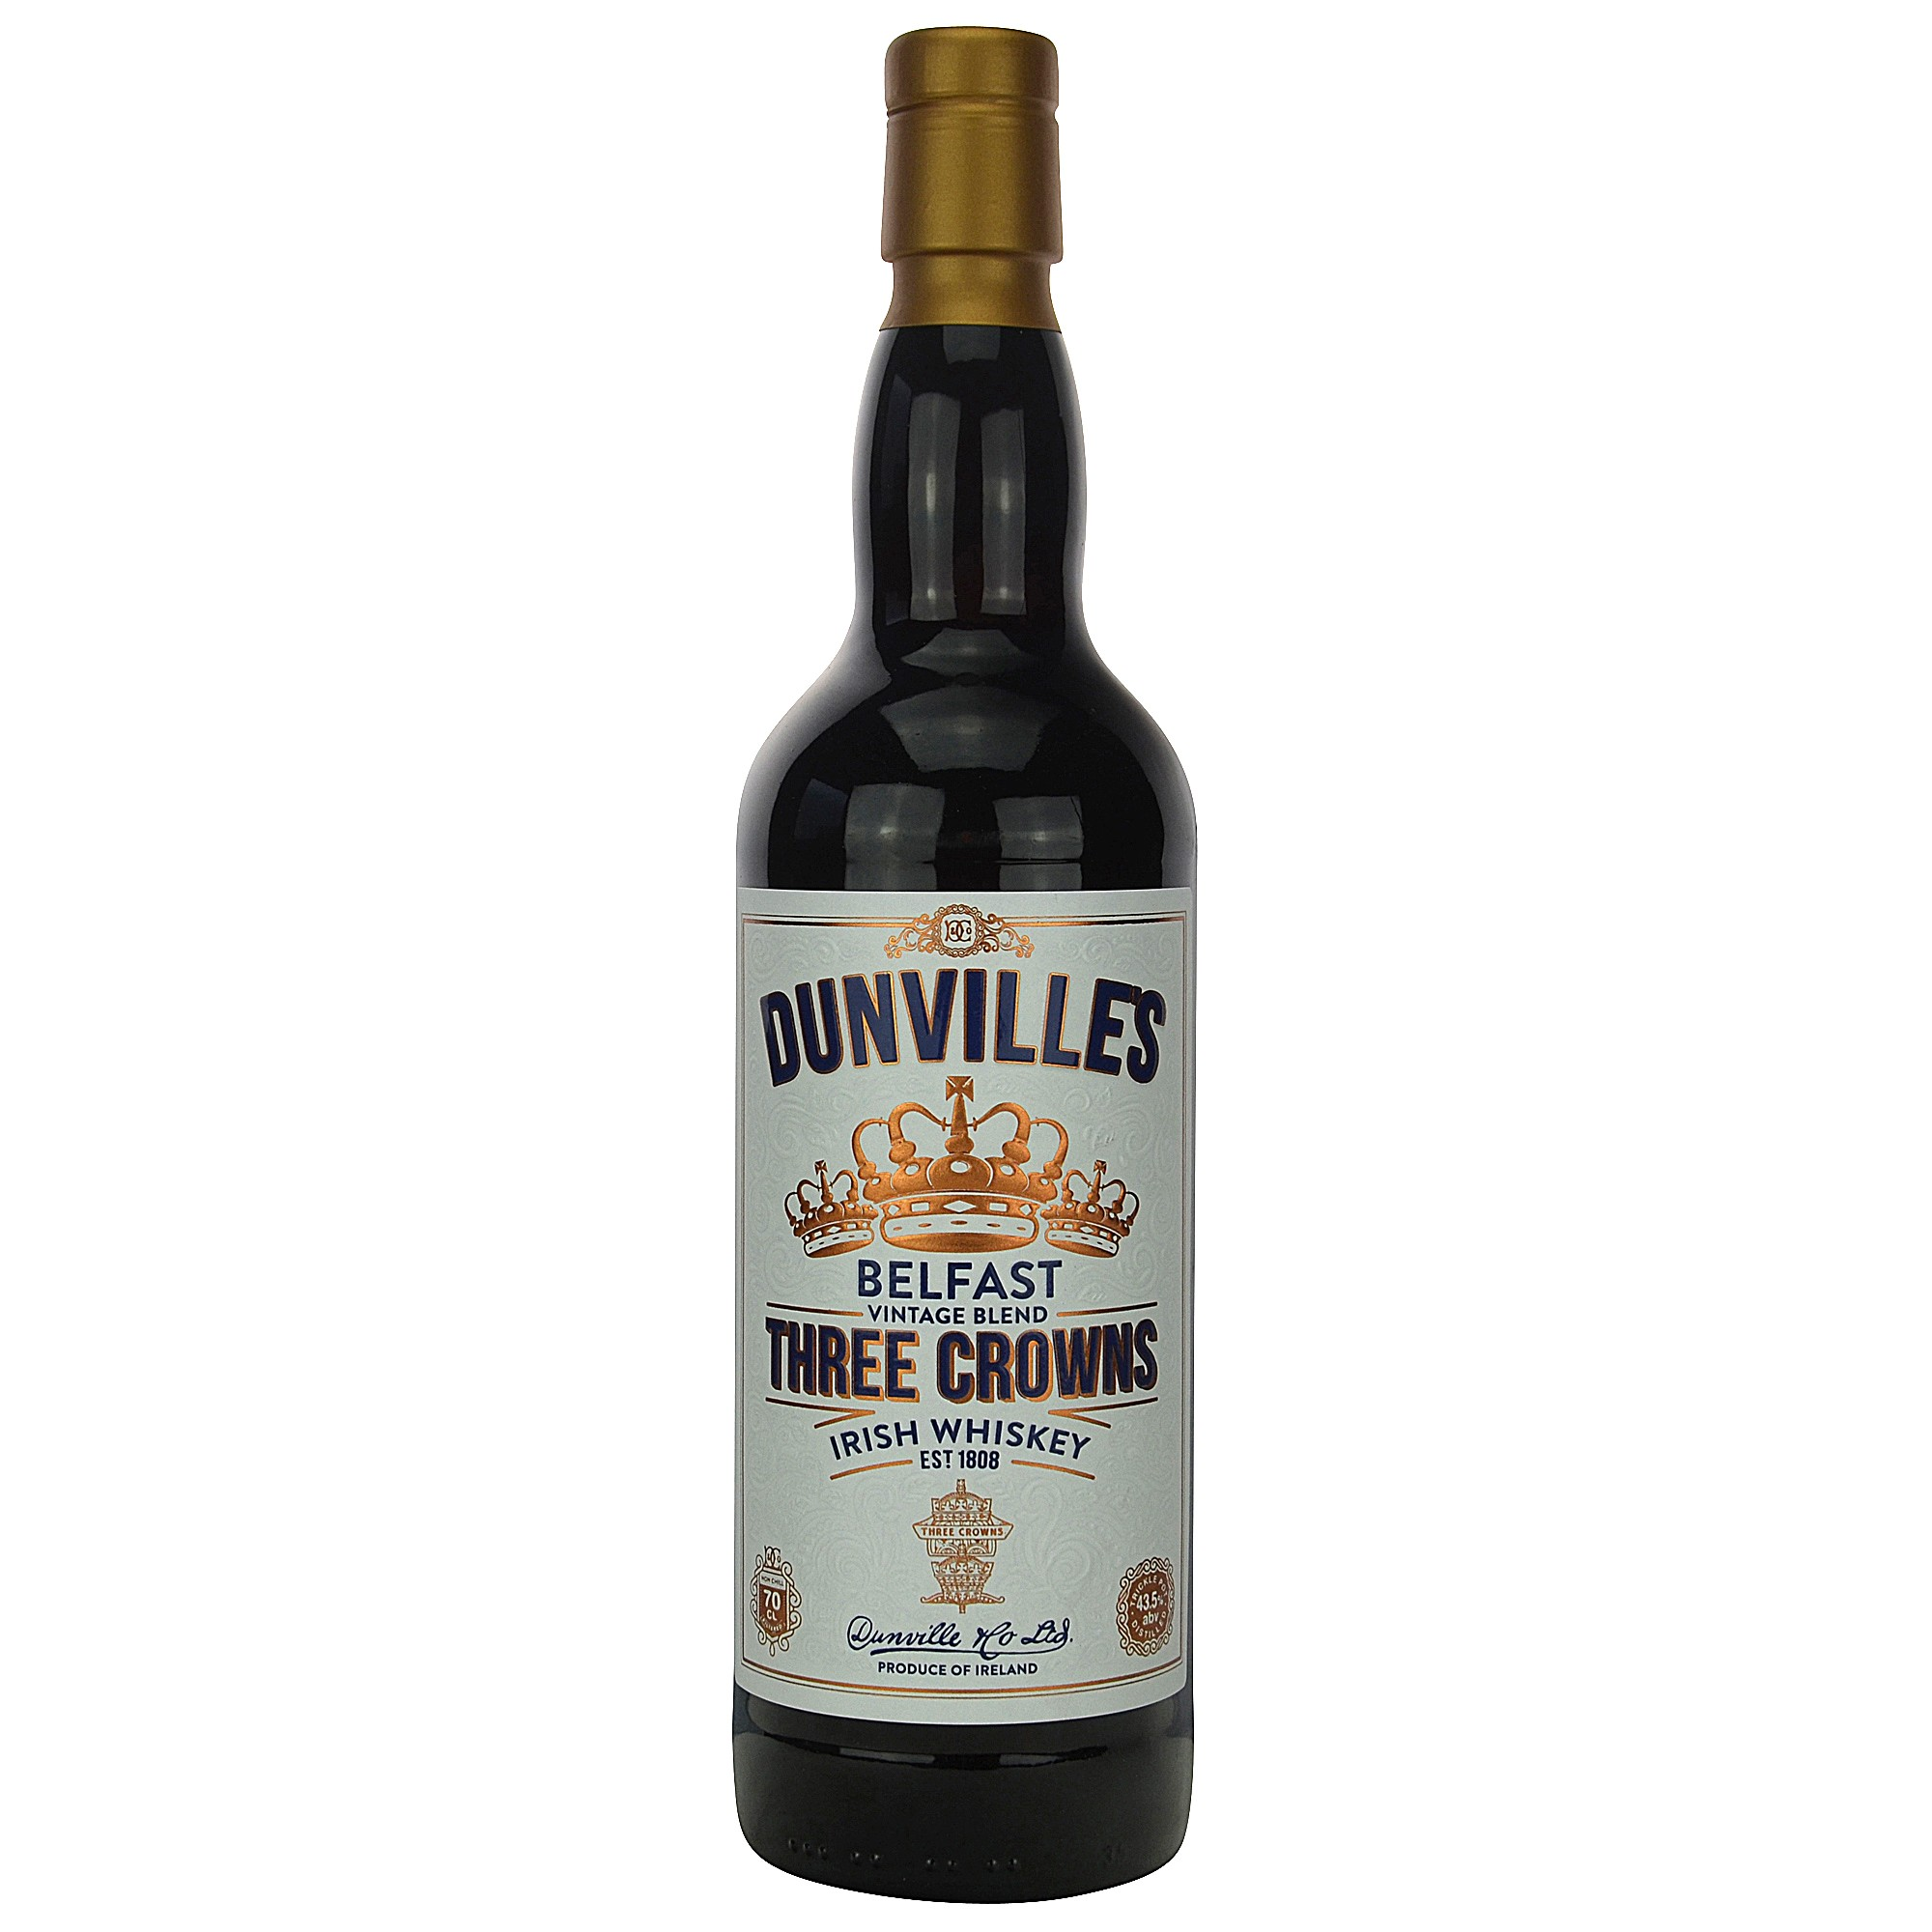 Dunville's Vintage Blend Three Corwns Blended Whiskey (Irland)